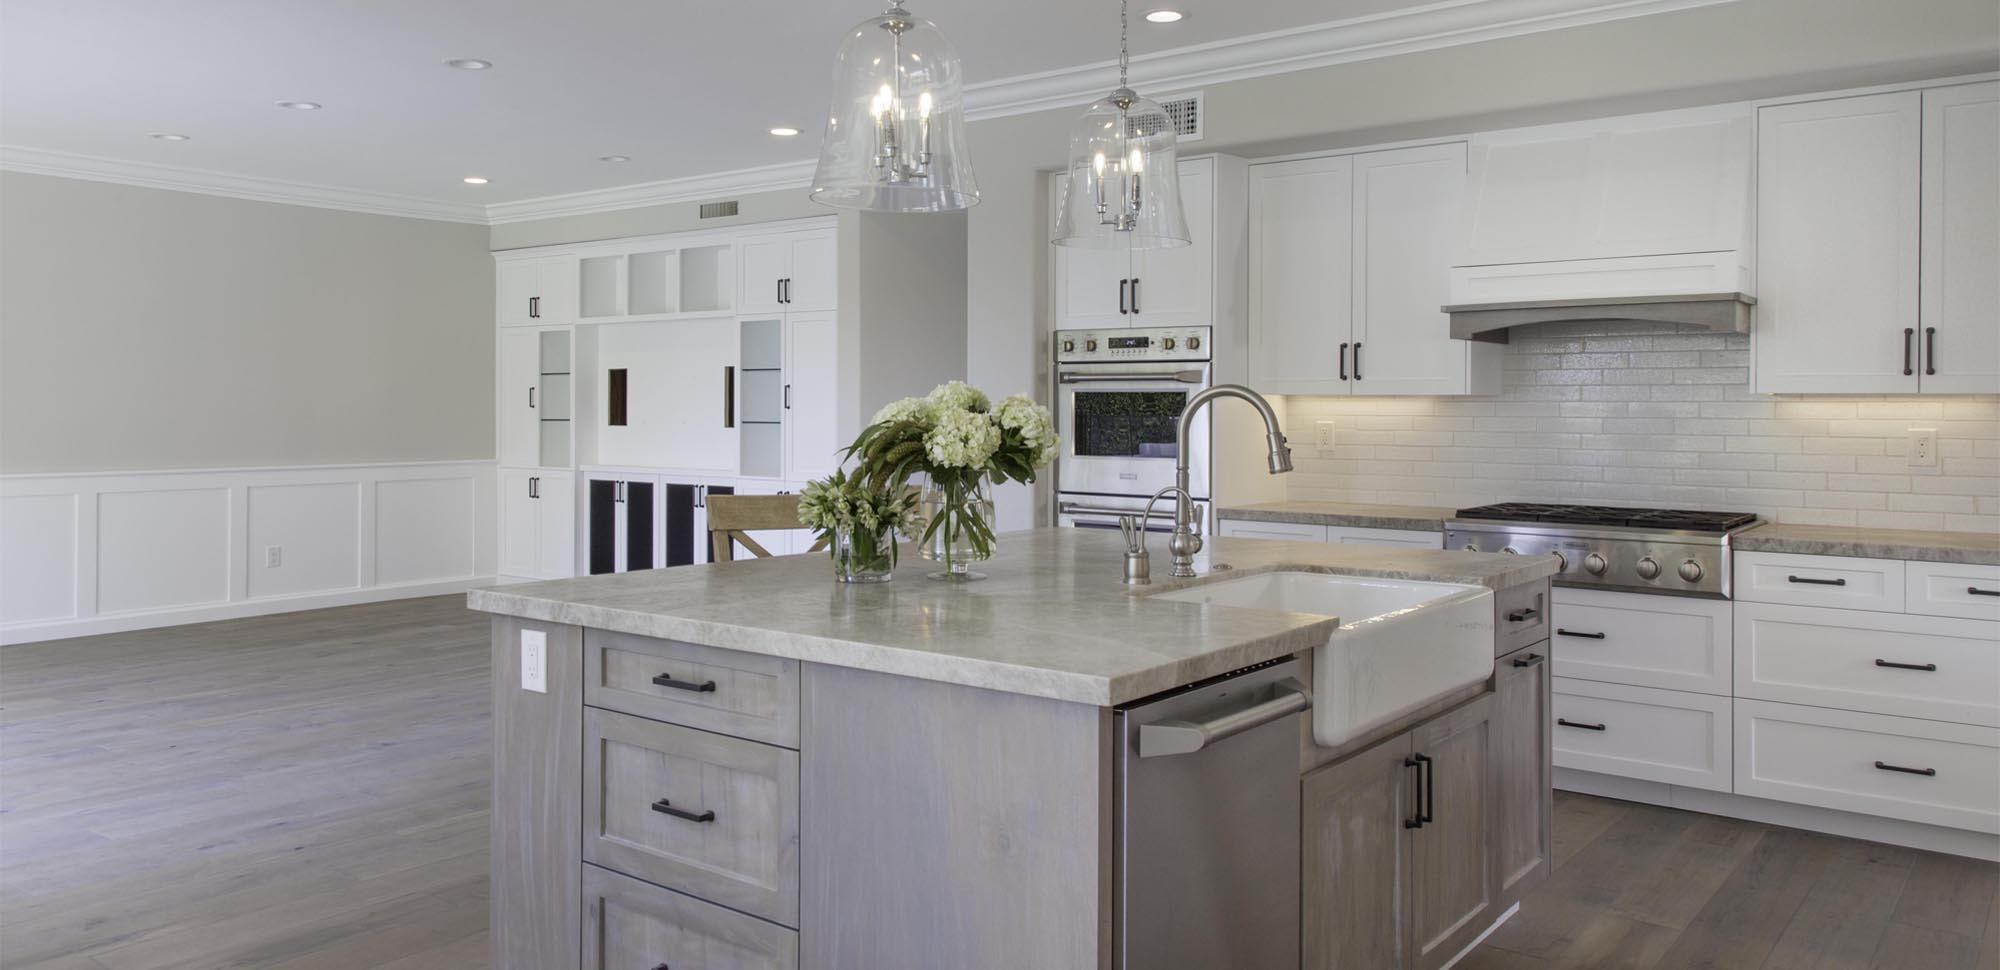 A newly finished kitchen with an attached dining area.